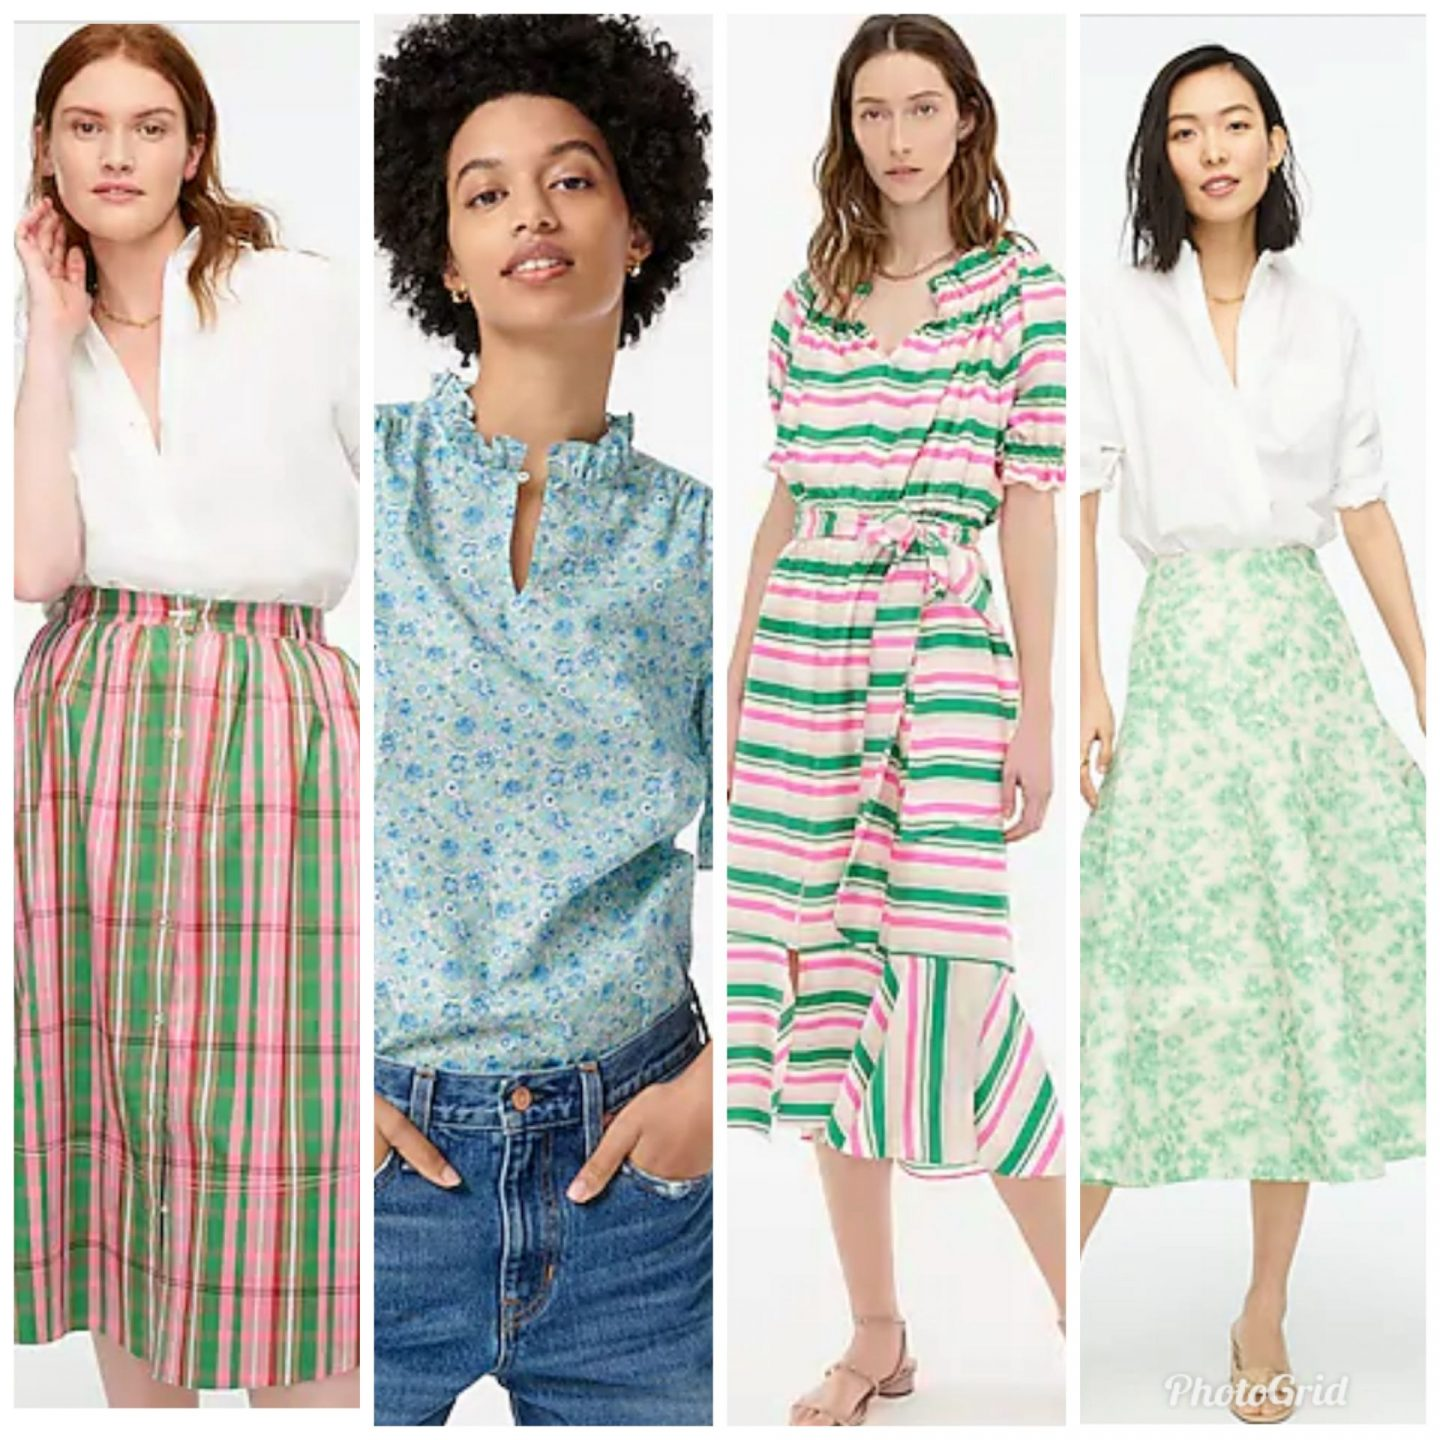 J. Crew New Arrivals by popular Kentucky fashion blog, Really Rynetta: collage image of J. Crew pink tartan skirt, blue floral print ruffle neck shirt, pink and green stripe dress, and green floral print skirt.